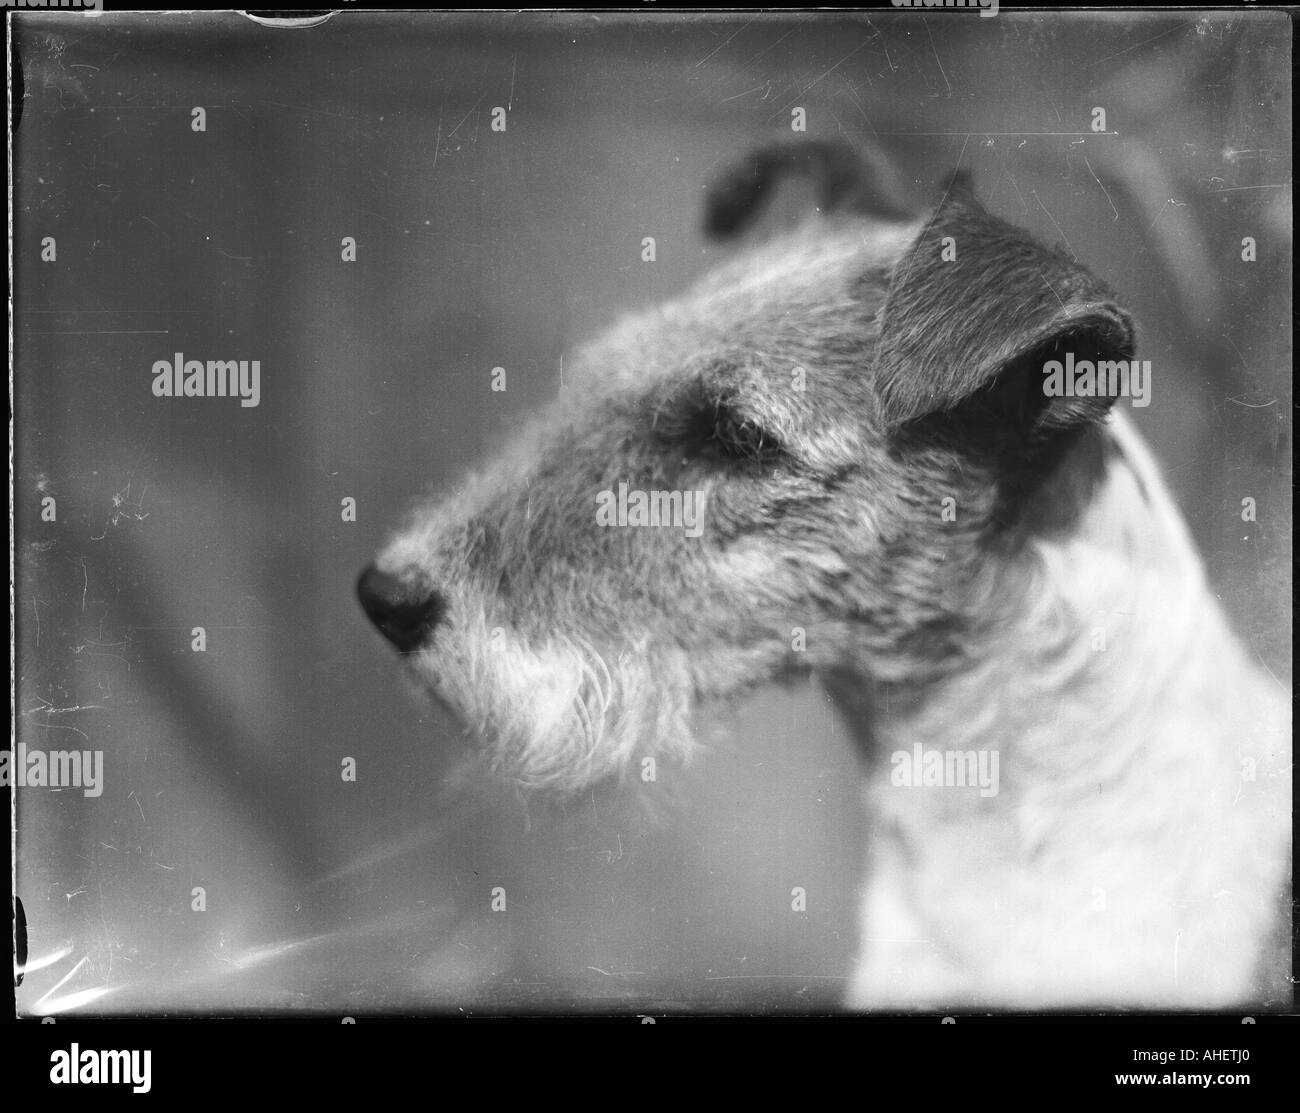 Fox Terrier Black and White Stock Photos & Images - Alamy